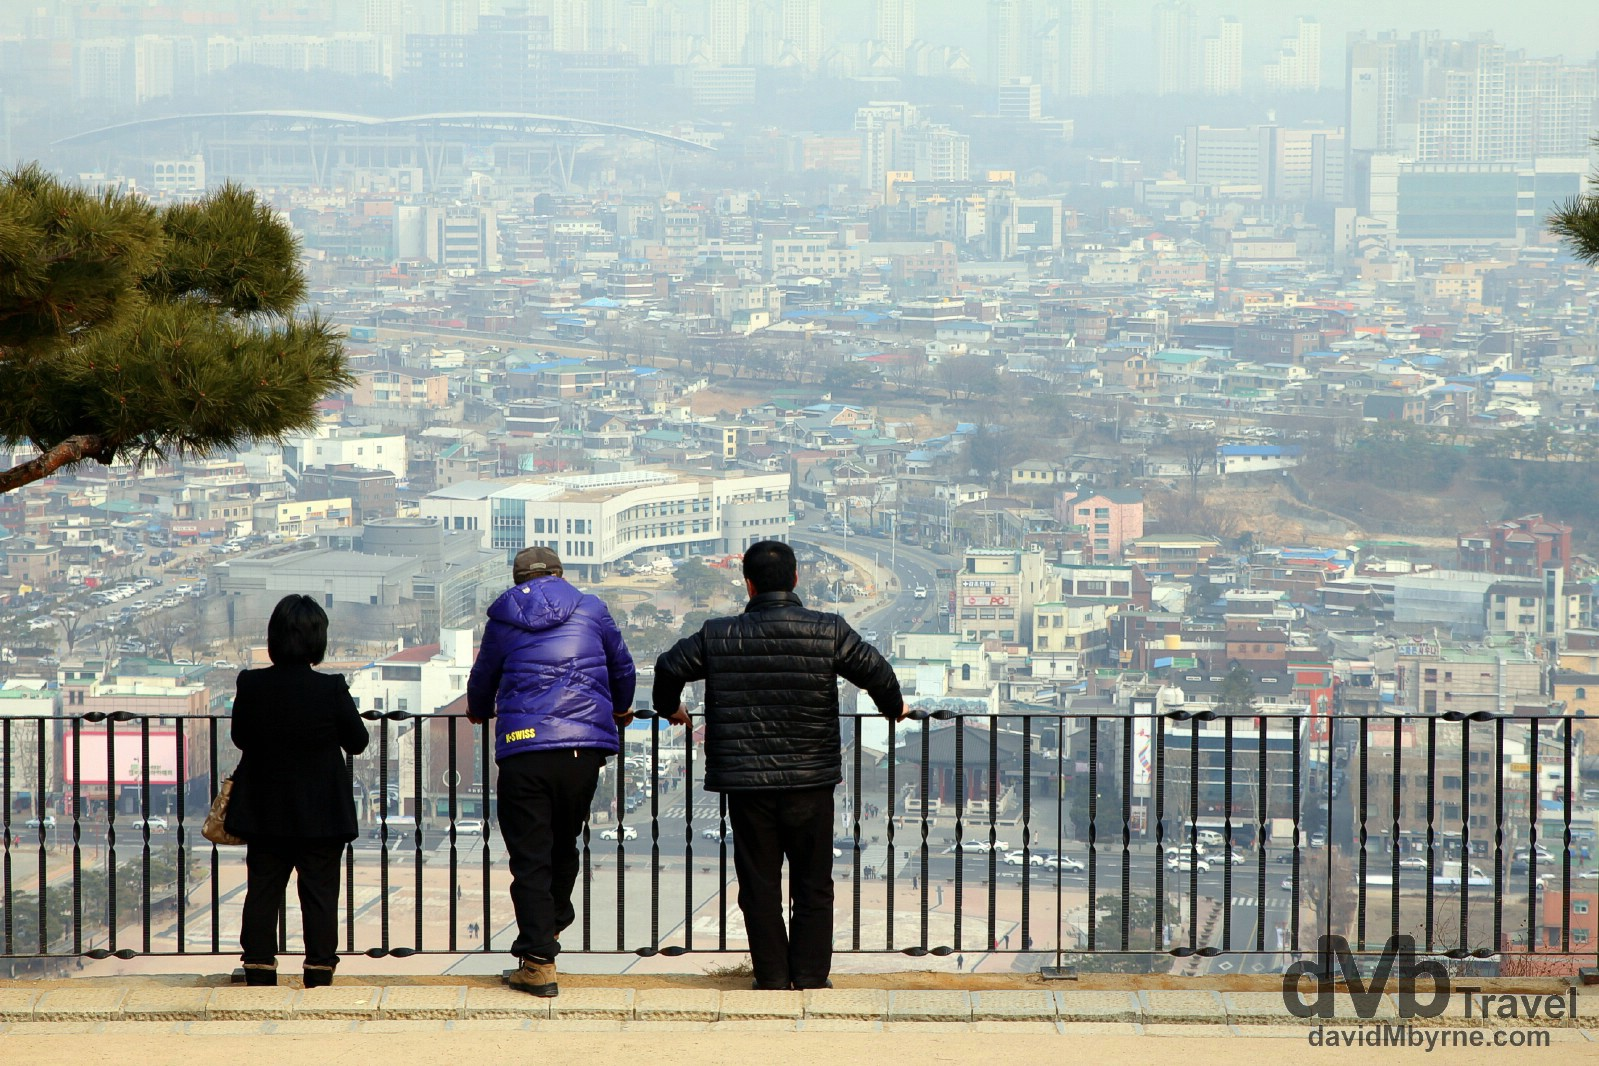 Viewing Sewon from atop Paldansan (Mt. Paldan), the highest point of Suwon Hwaseong Fortress in Suwon, South Korea. February 23rd, 2014.